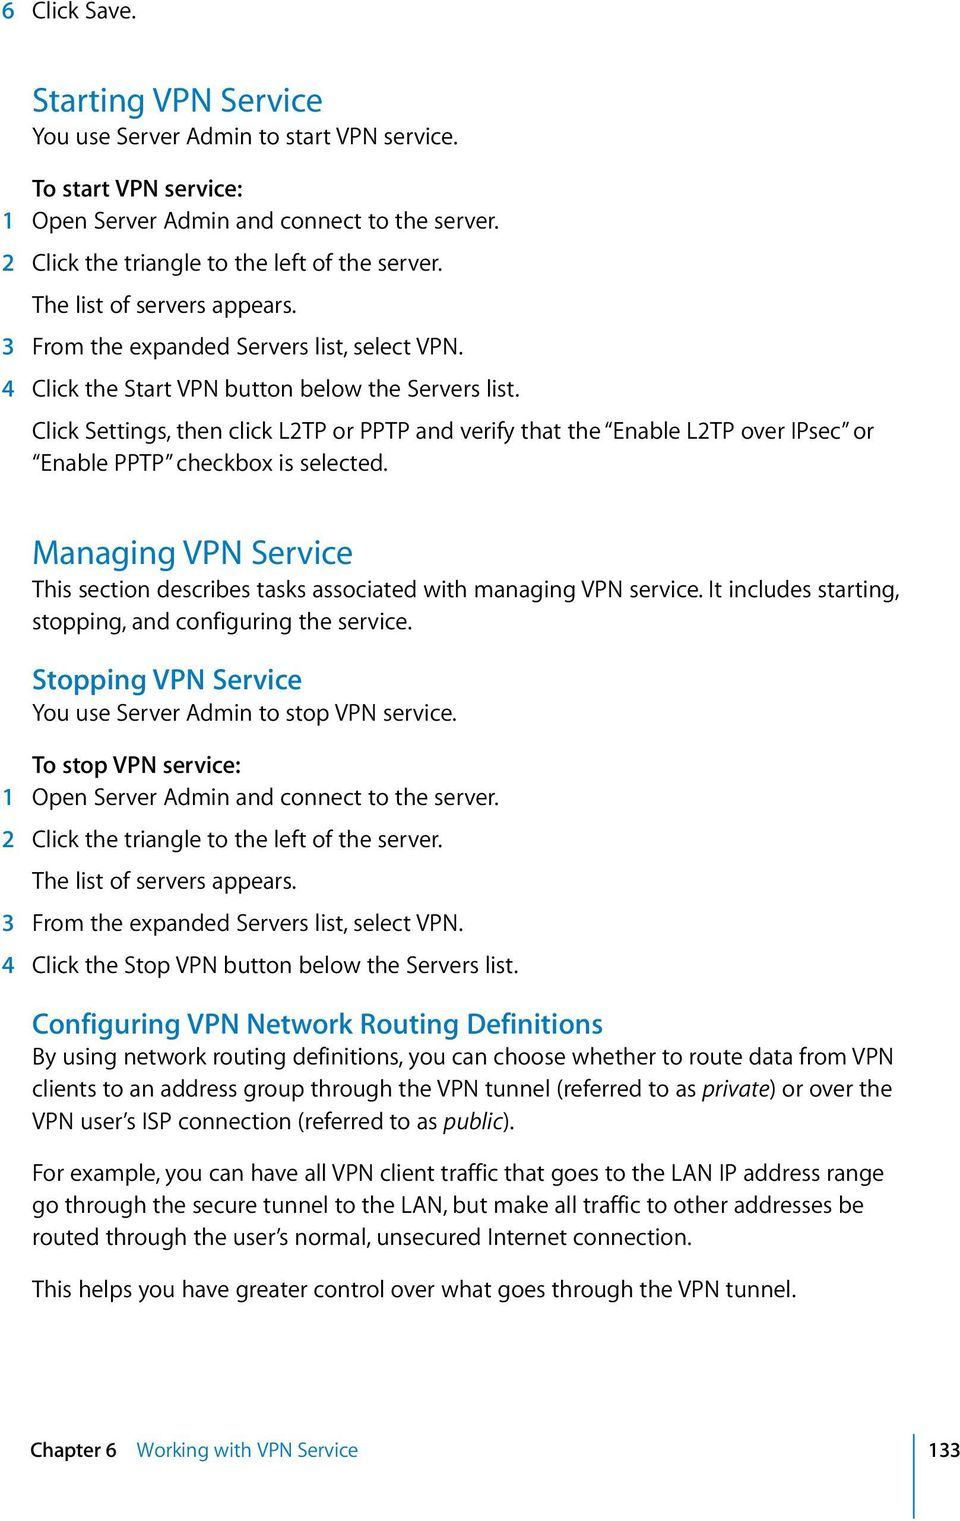 Managing VPN Service This section describes tasks associated with managing VPN service. It includes starting, stopping, and configuring the service.